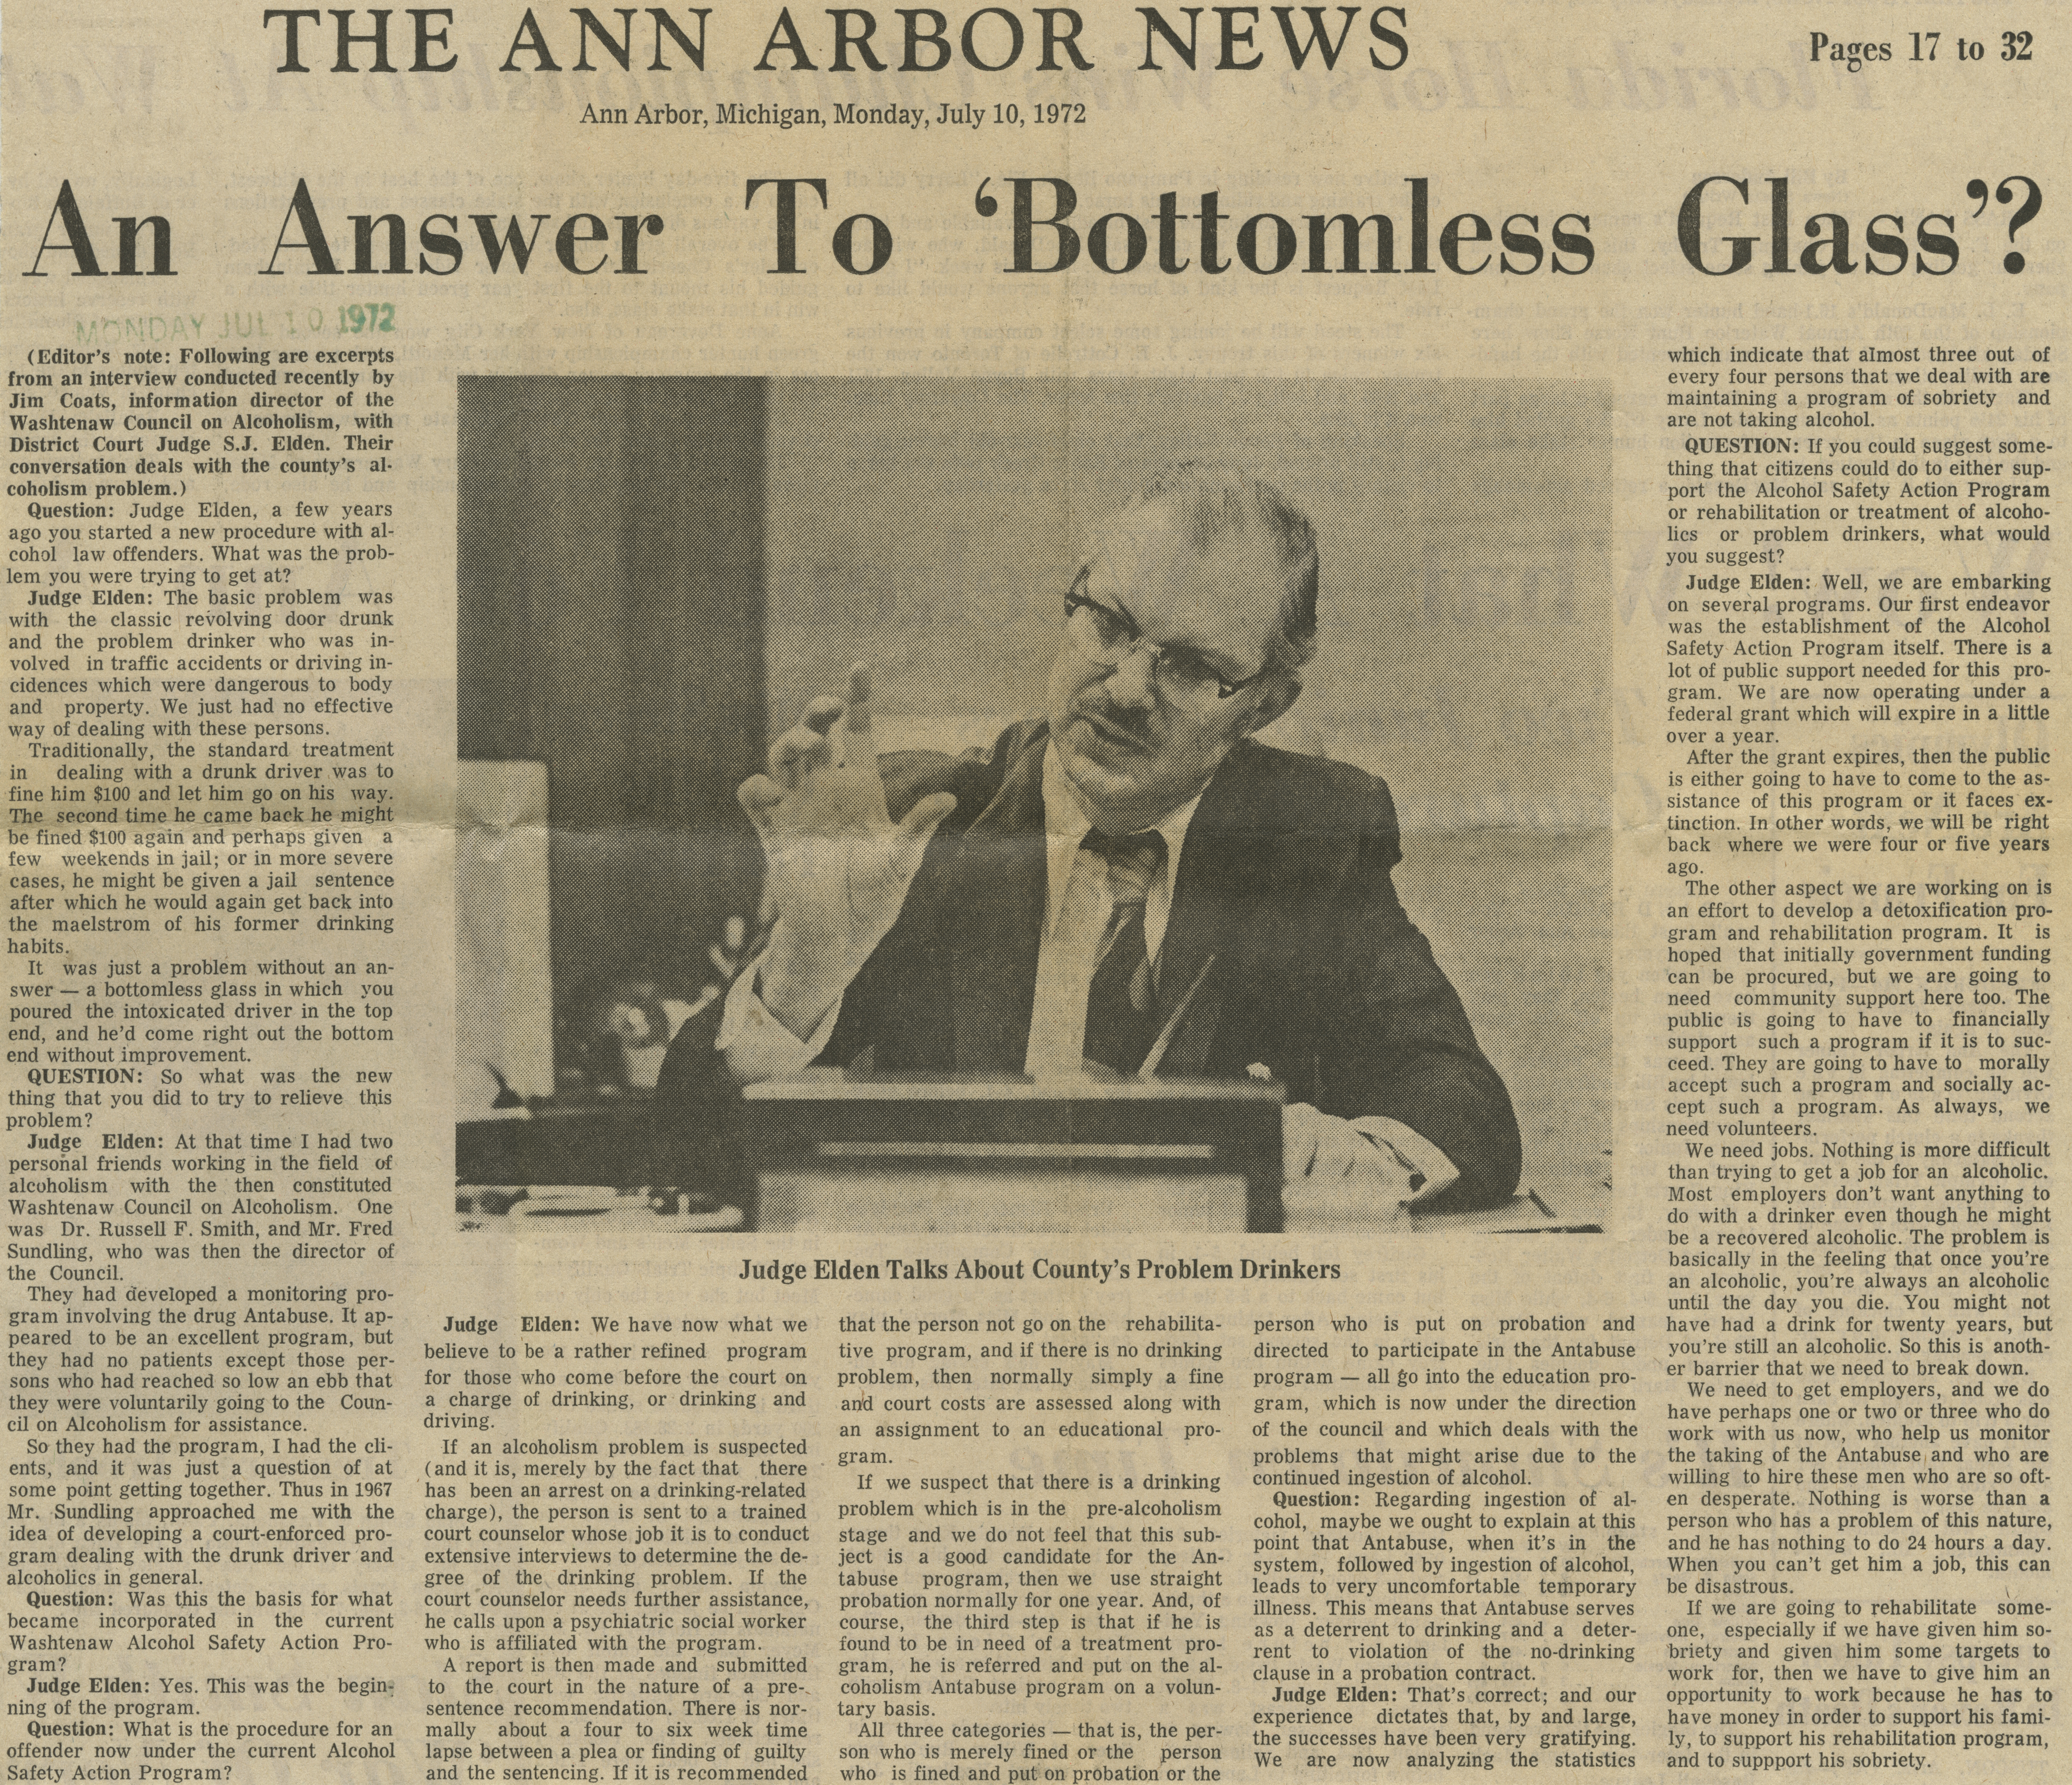 An Answer To 'Bottomless Glass'? image